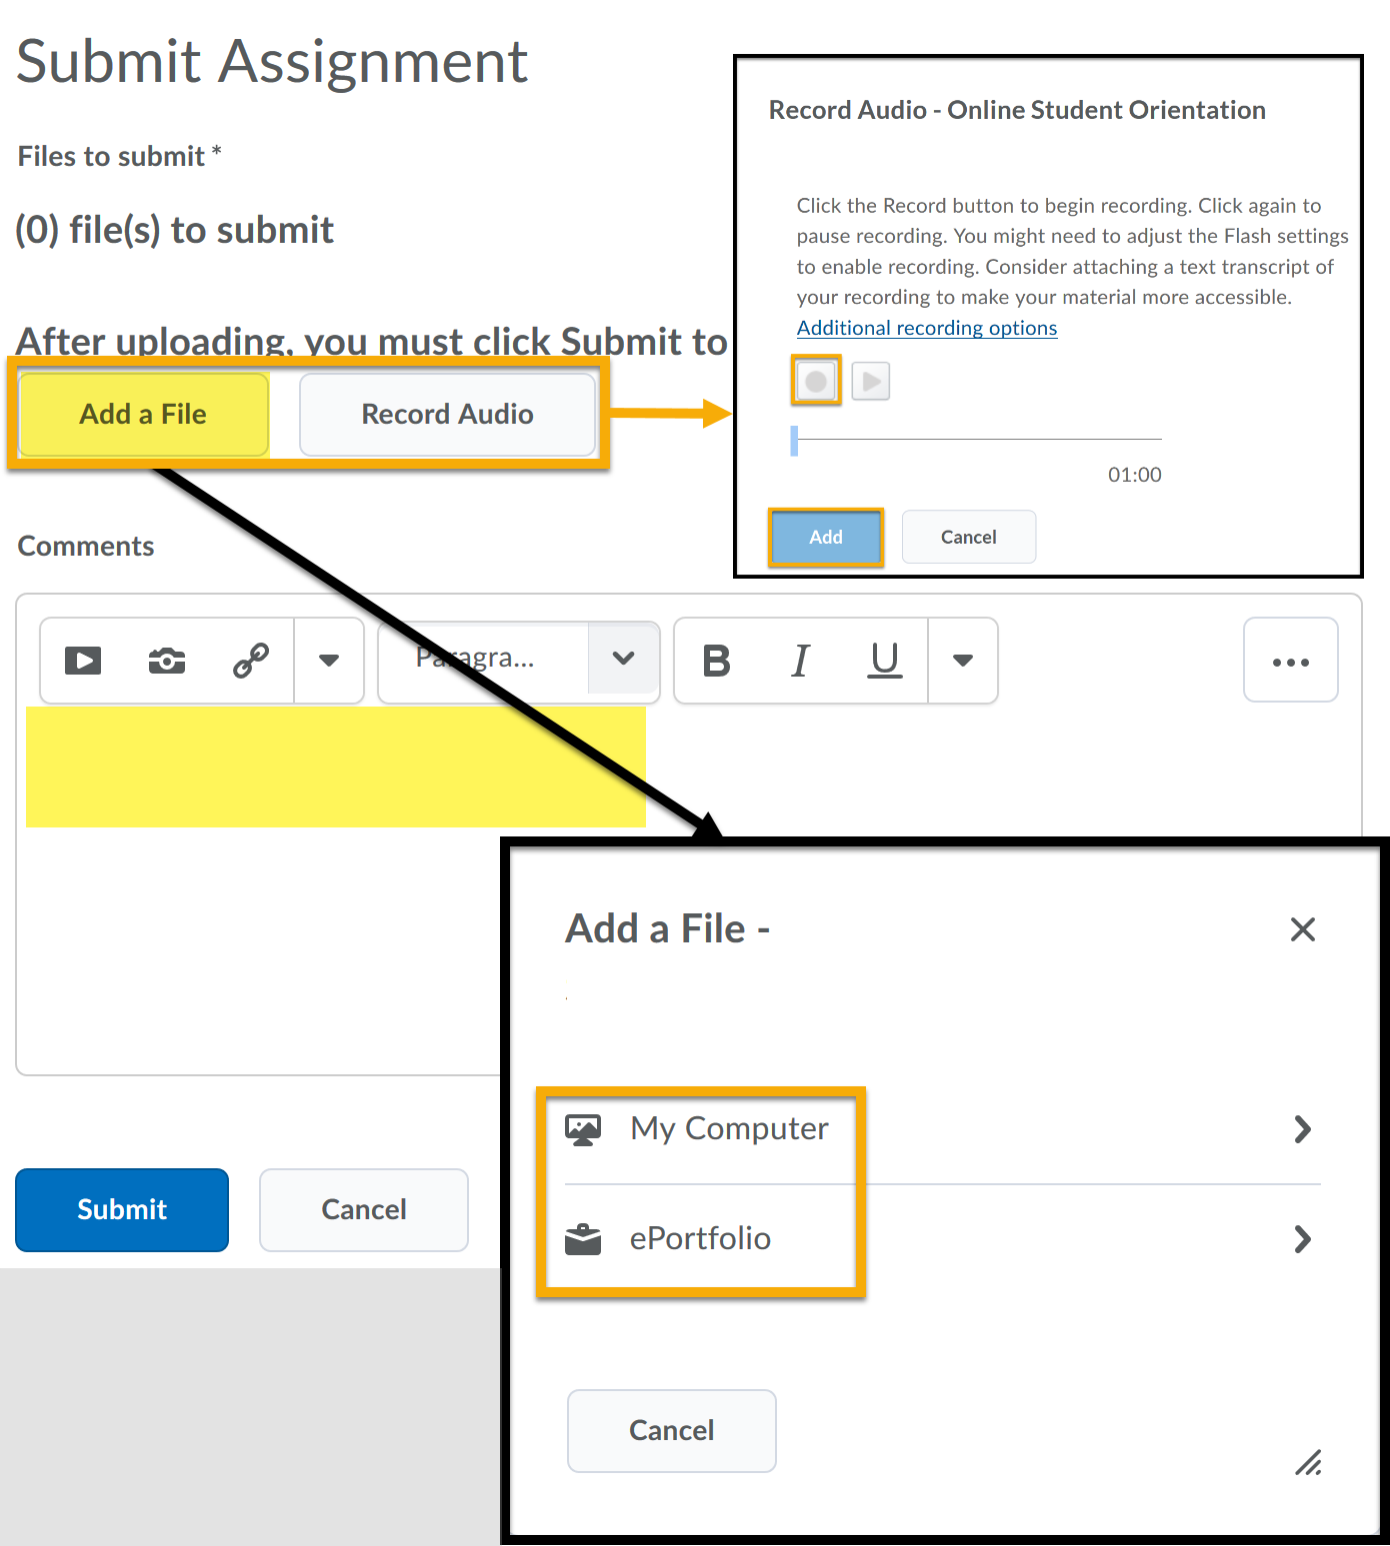 Add a File and Record Audio highlighted. Arrow point to expanded window for My Computer and ePortfolios are possible paths to select files.